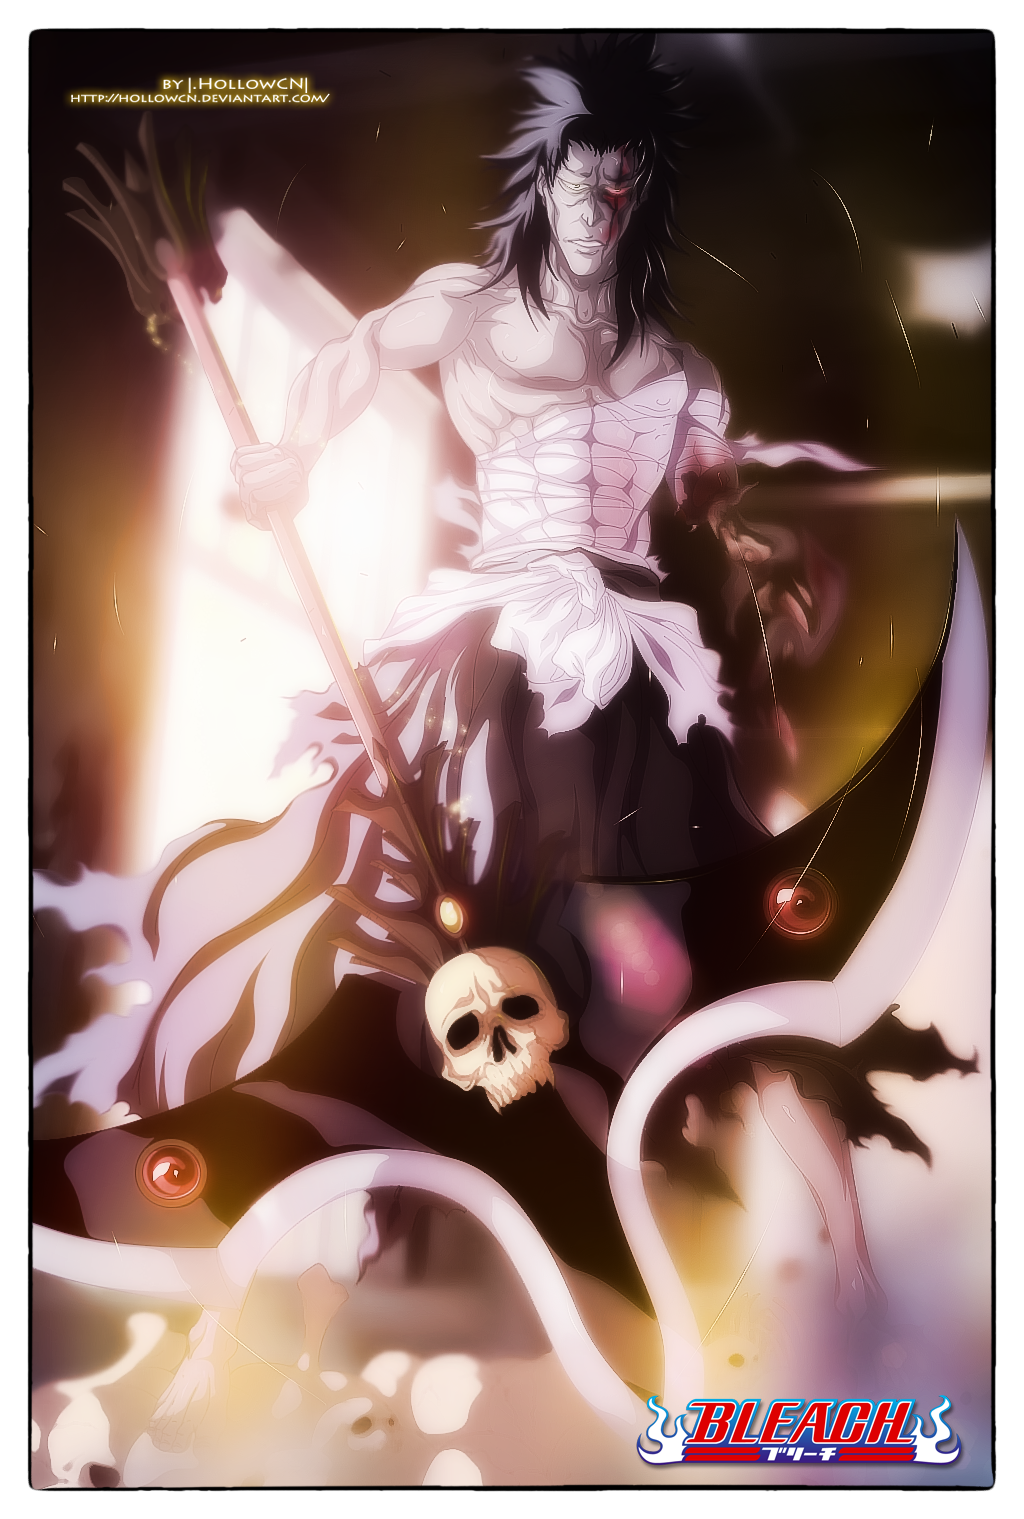 BanKai by HollowCN